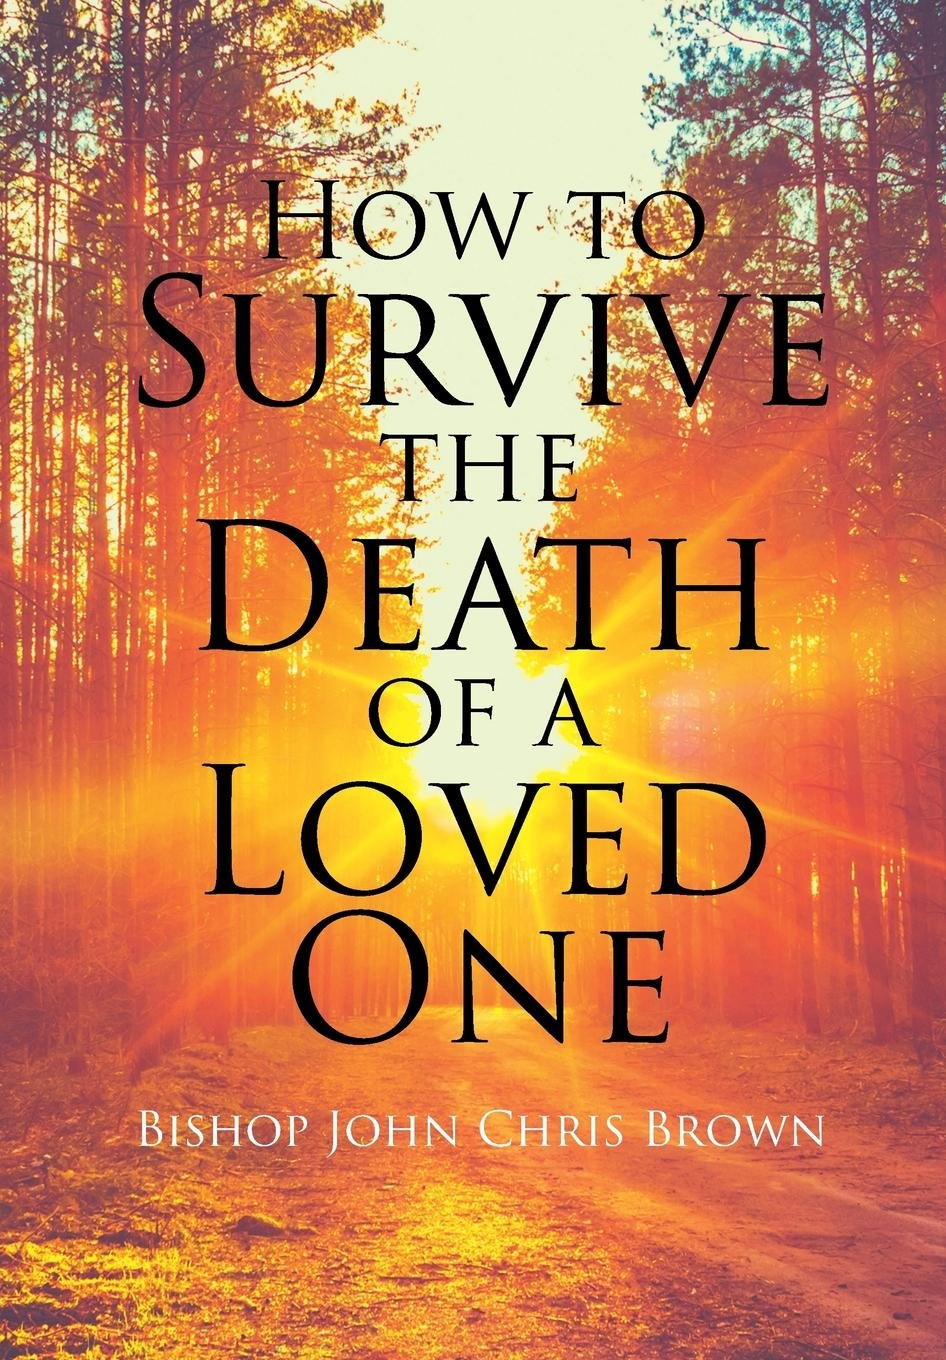 How to survive the death of a beloved husband and loved ones 86